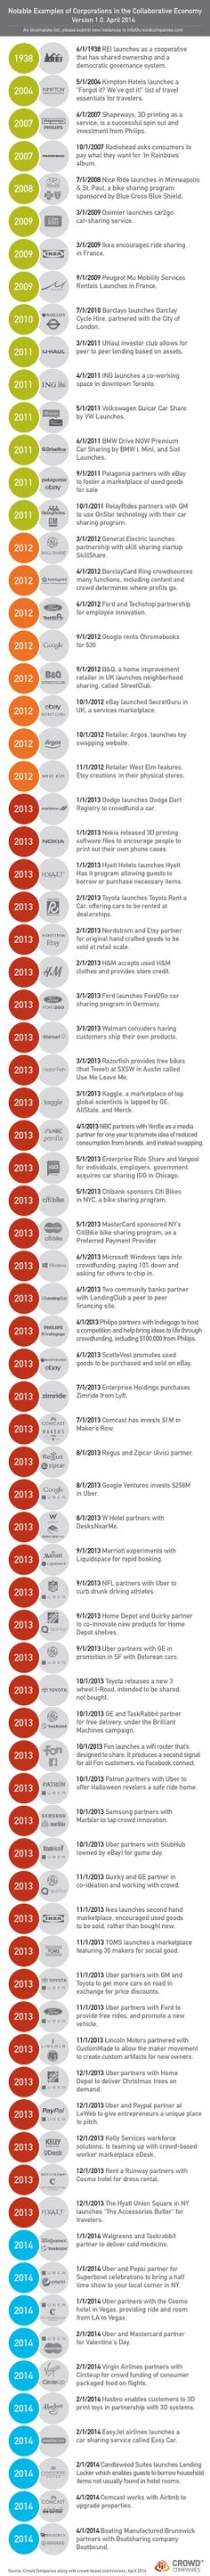 Graphic: A Timeline of Corporations in the Collaborative Economy  http://www.web-strategist.com/blog/2014/04/04/graphic-a-timeline-of-corporations-in-the-collaborative-economy/